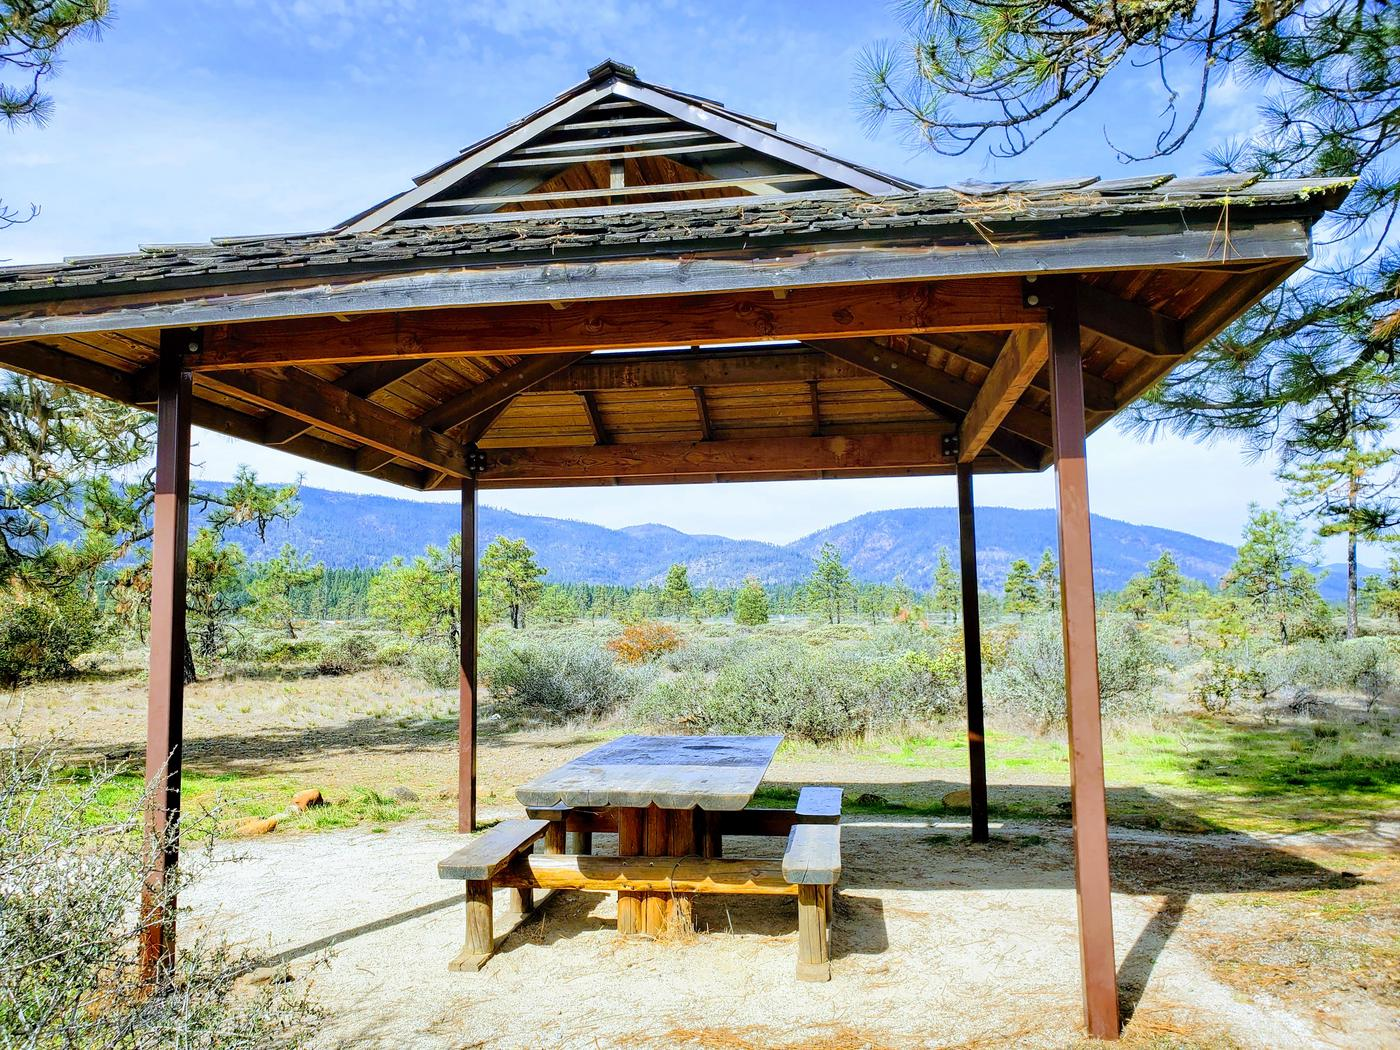 Picnic shelter at the Rough and Ready Flat trailhead.